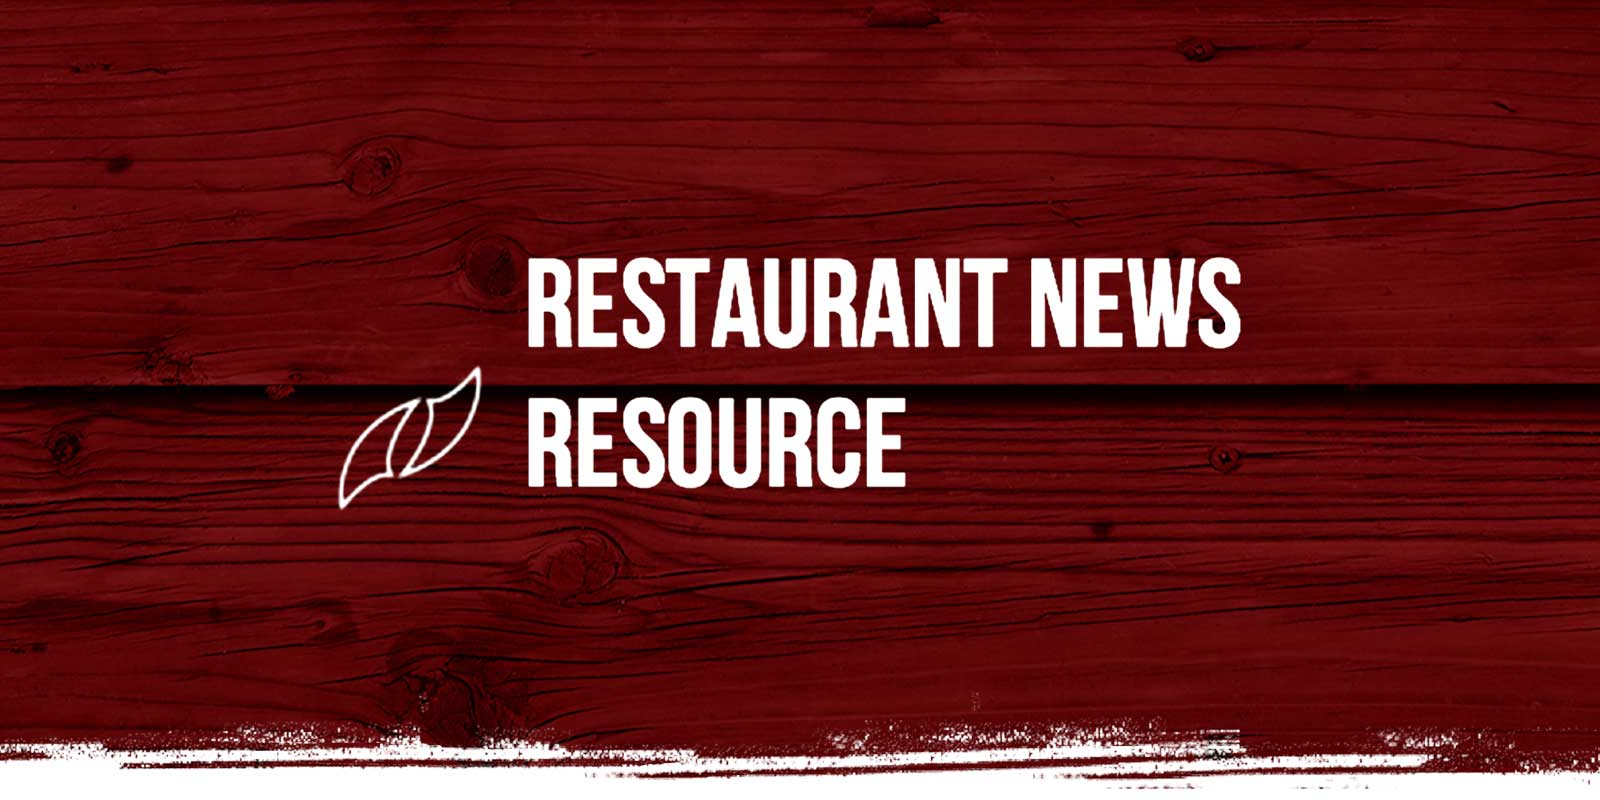 Restaurant News logo on red weathered wood background